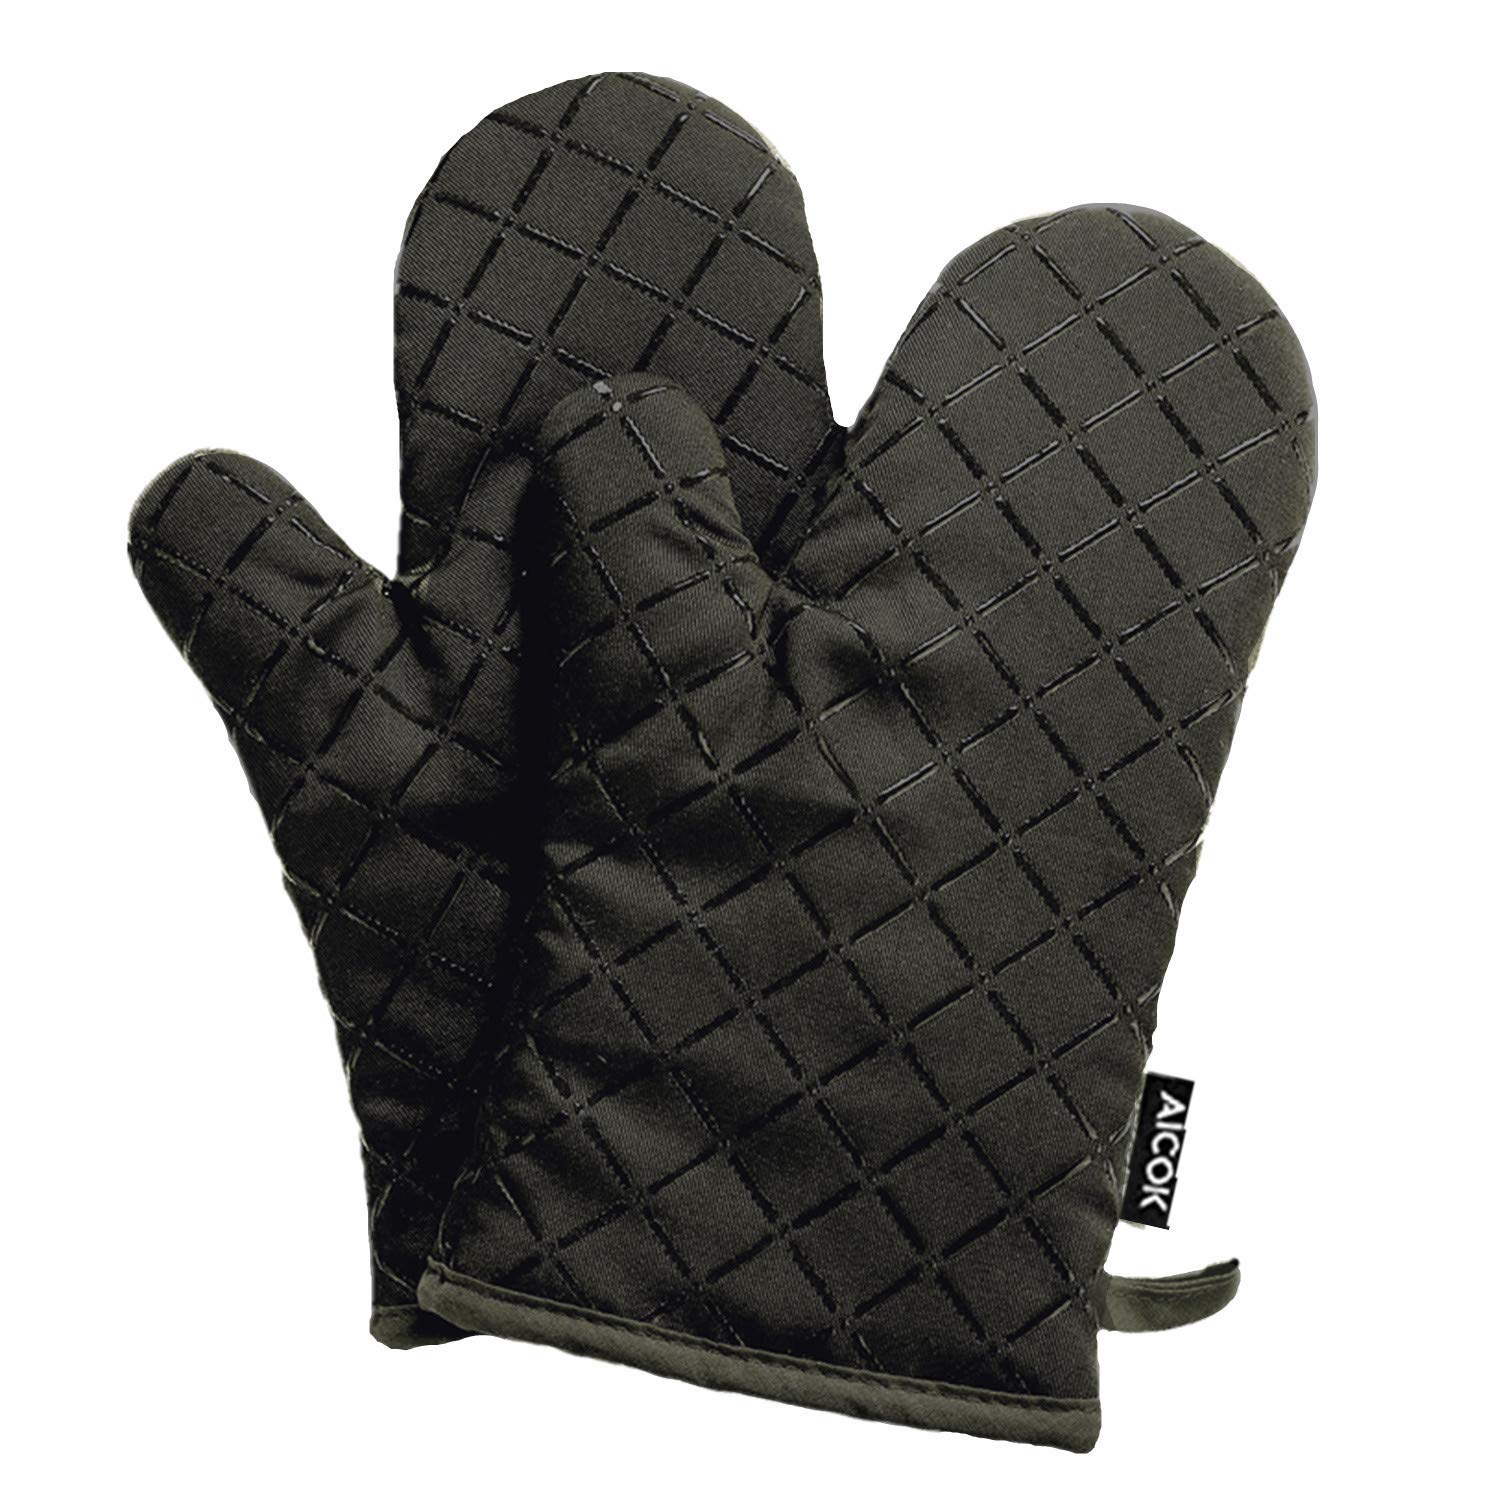 AICOK Oven Mitts, Heat Resistant Oven Gloves, Non-Slip Cooking Gloves, for BBQ, Baking, Barbecue Potholder, Black by AICOK